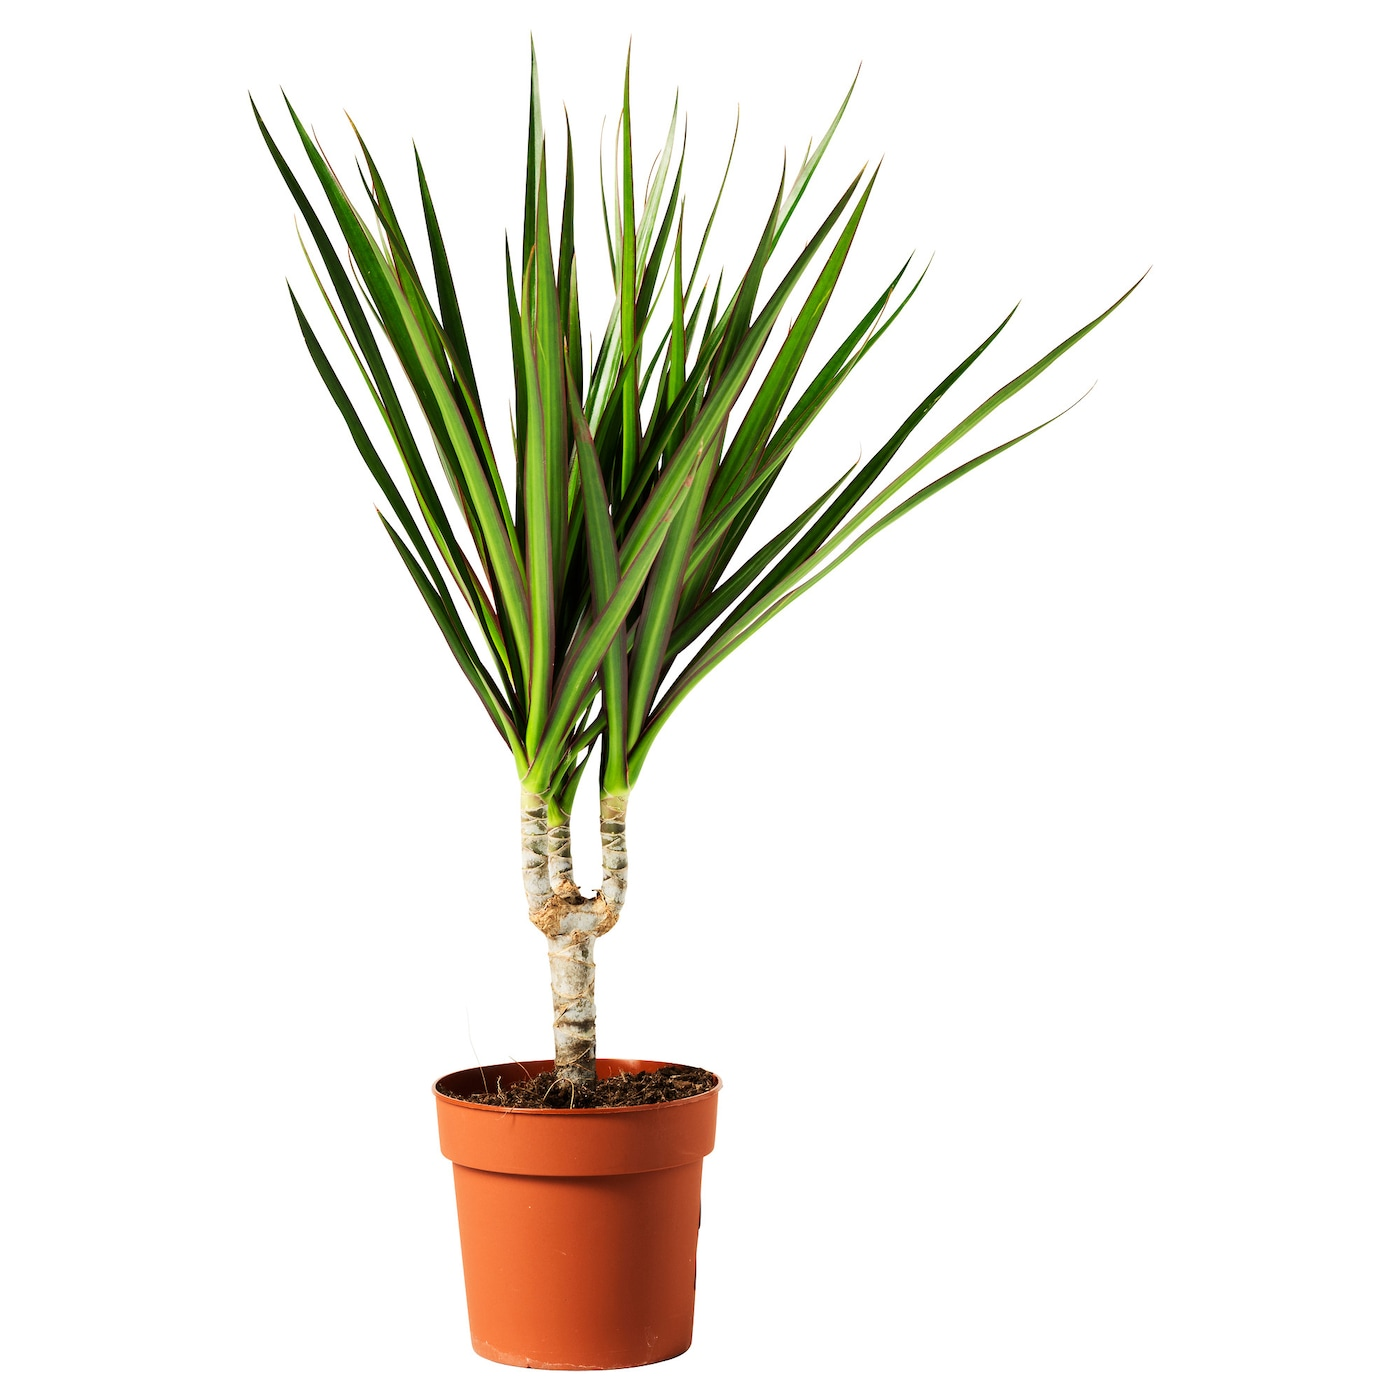 Dracaena marginata potted plant dragon tree 1 stem 10 5 cm for Plante dracaena